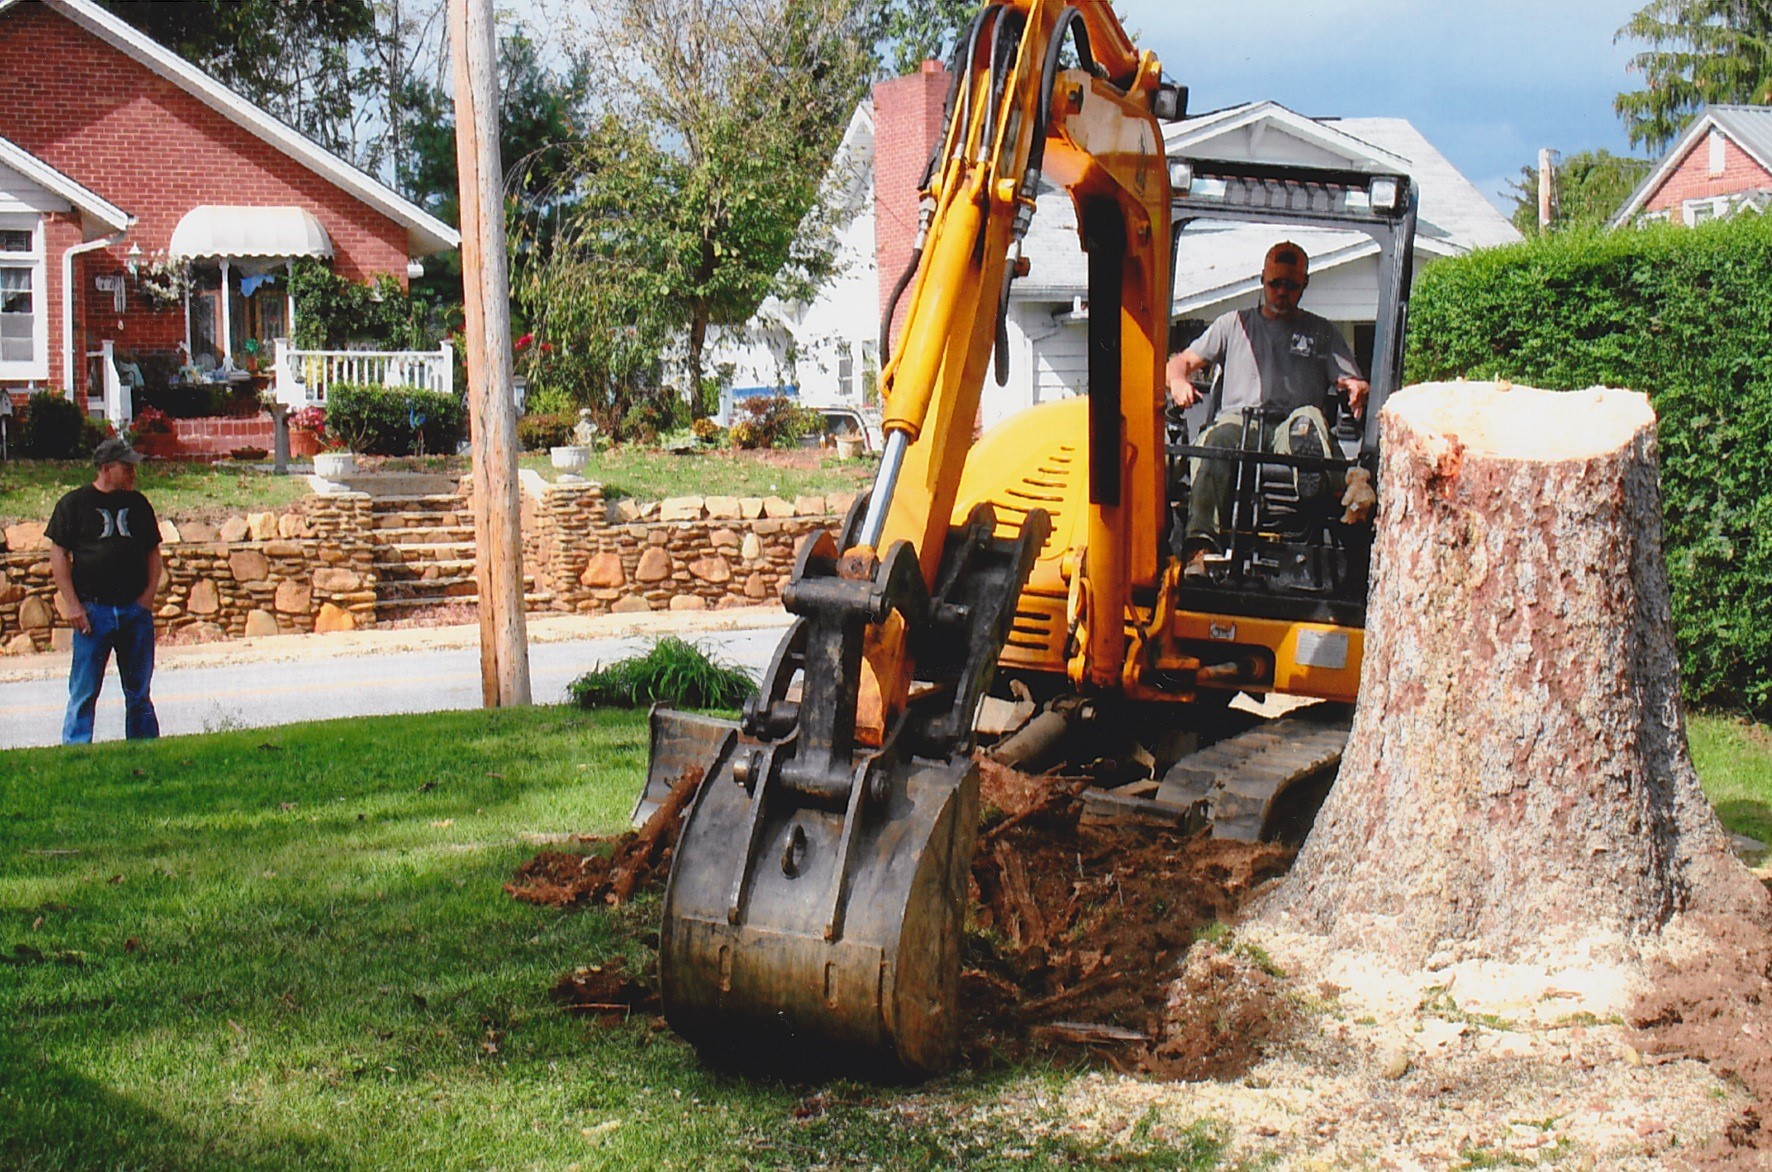 Stump removal cost-Palm Beach County Tree Trimming and Tree Removal Services-We Offer Tree Trimming Services, Tree Removal, Tree Pruning, Tree Cutting, Residential and Commercial Tree Trimming Services, Storm Damage, Emergency Tree Removal, Land Clearing, Tree Companies, Tree Care Service, Stump Grinding, and we're the Best Tree Trimming Company Near You Guaranteed!